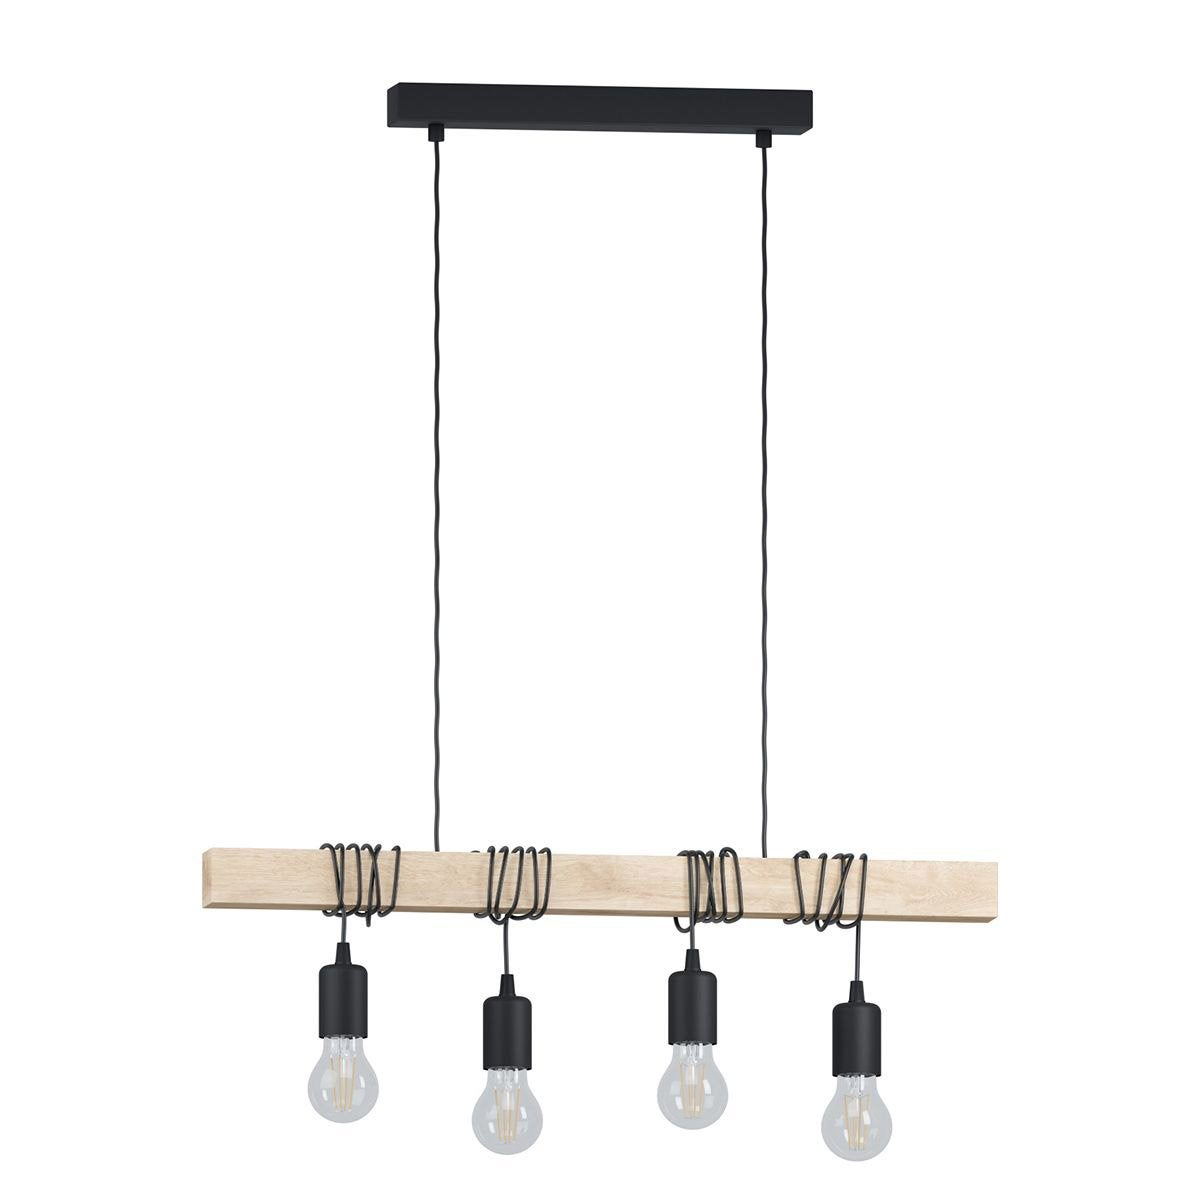 Suspension e27 design townshend bois noir 4 x 60 w eglo for Suspension luminaire filaire